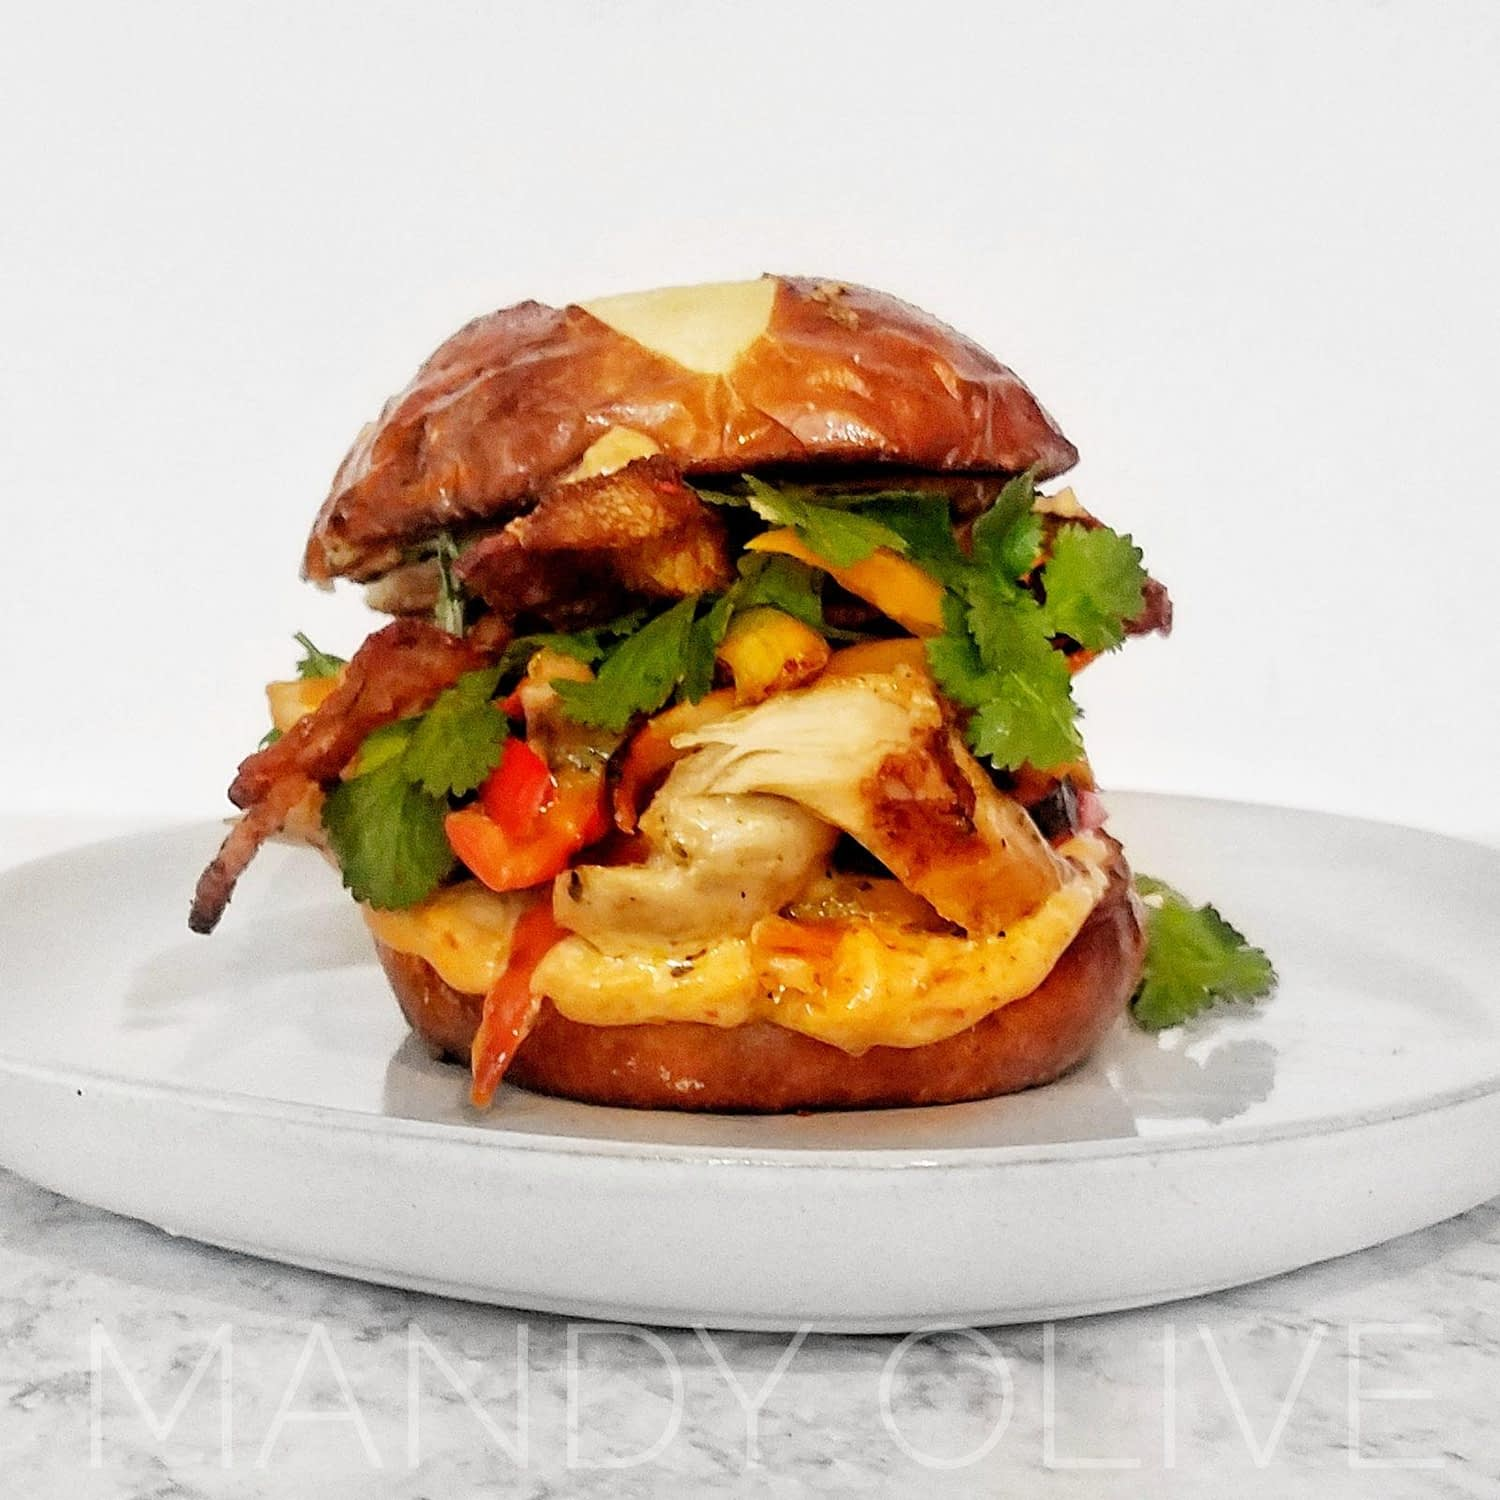 pulled chicken sandwich with chipotle mayo and bell peppers on a pretzel bun.